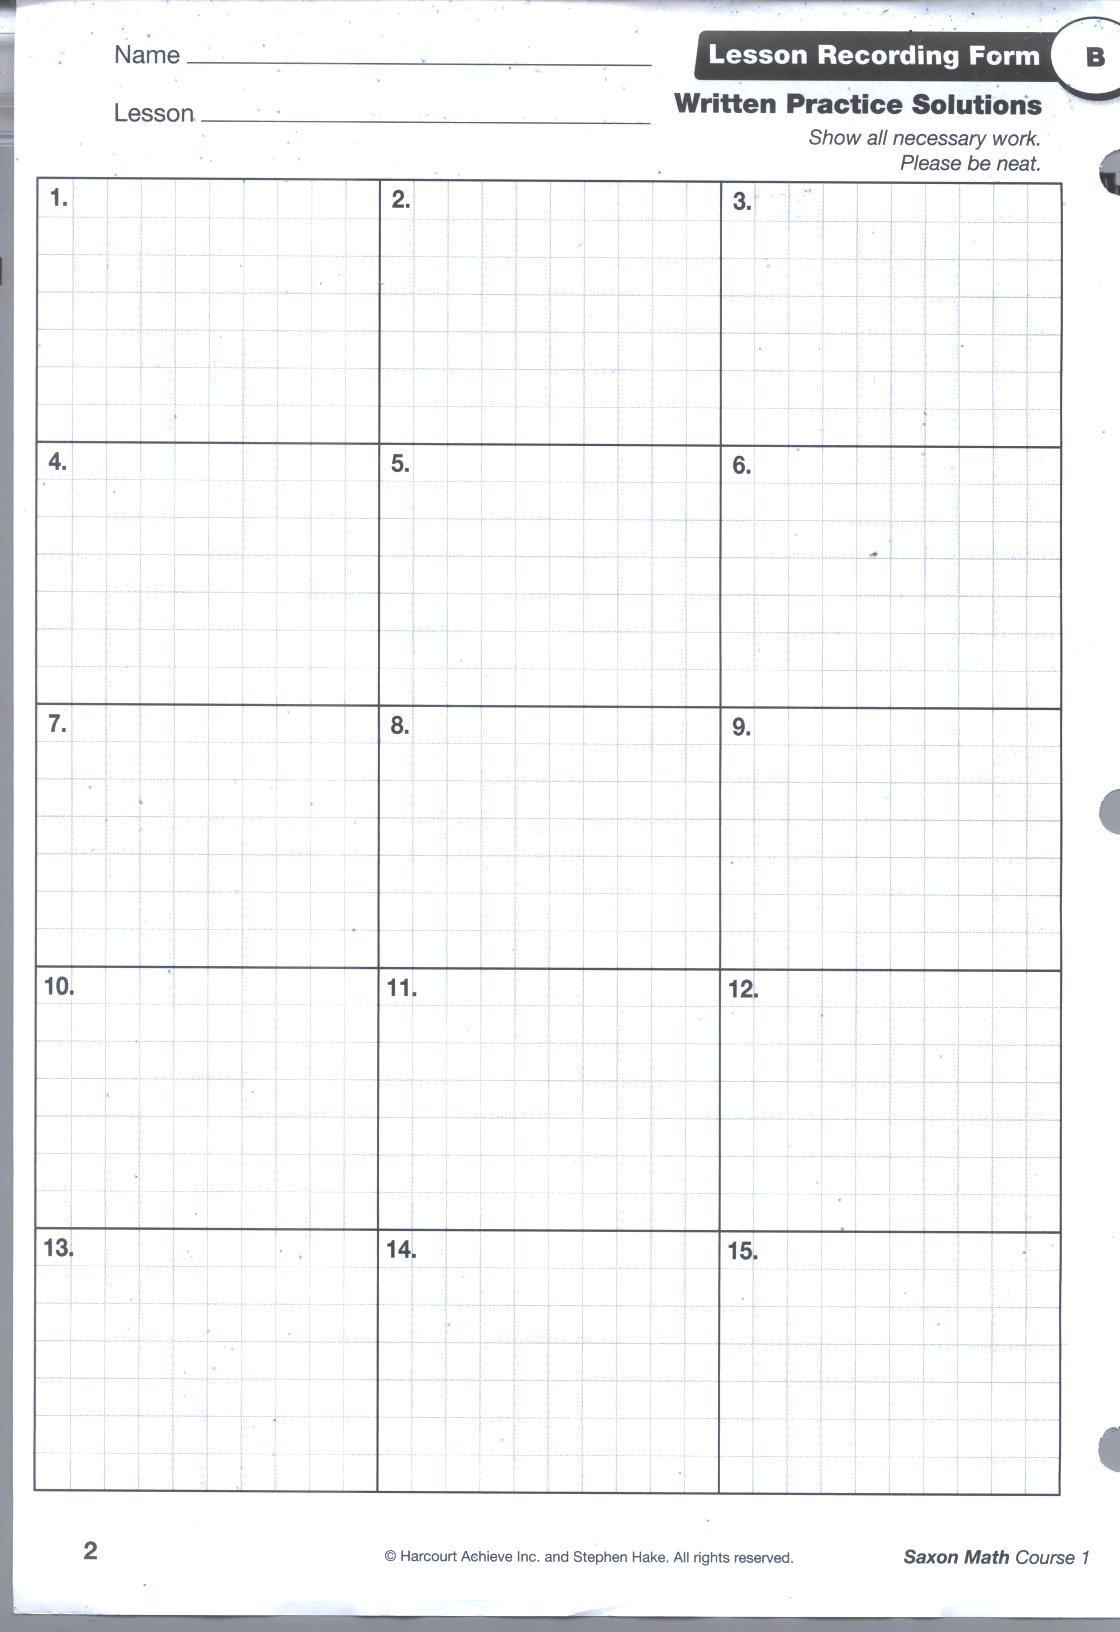 Printables Saxon Math Worksheets saxon math worksheets davezan 4th grade davezan